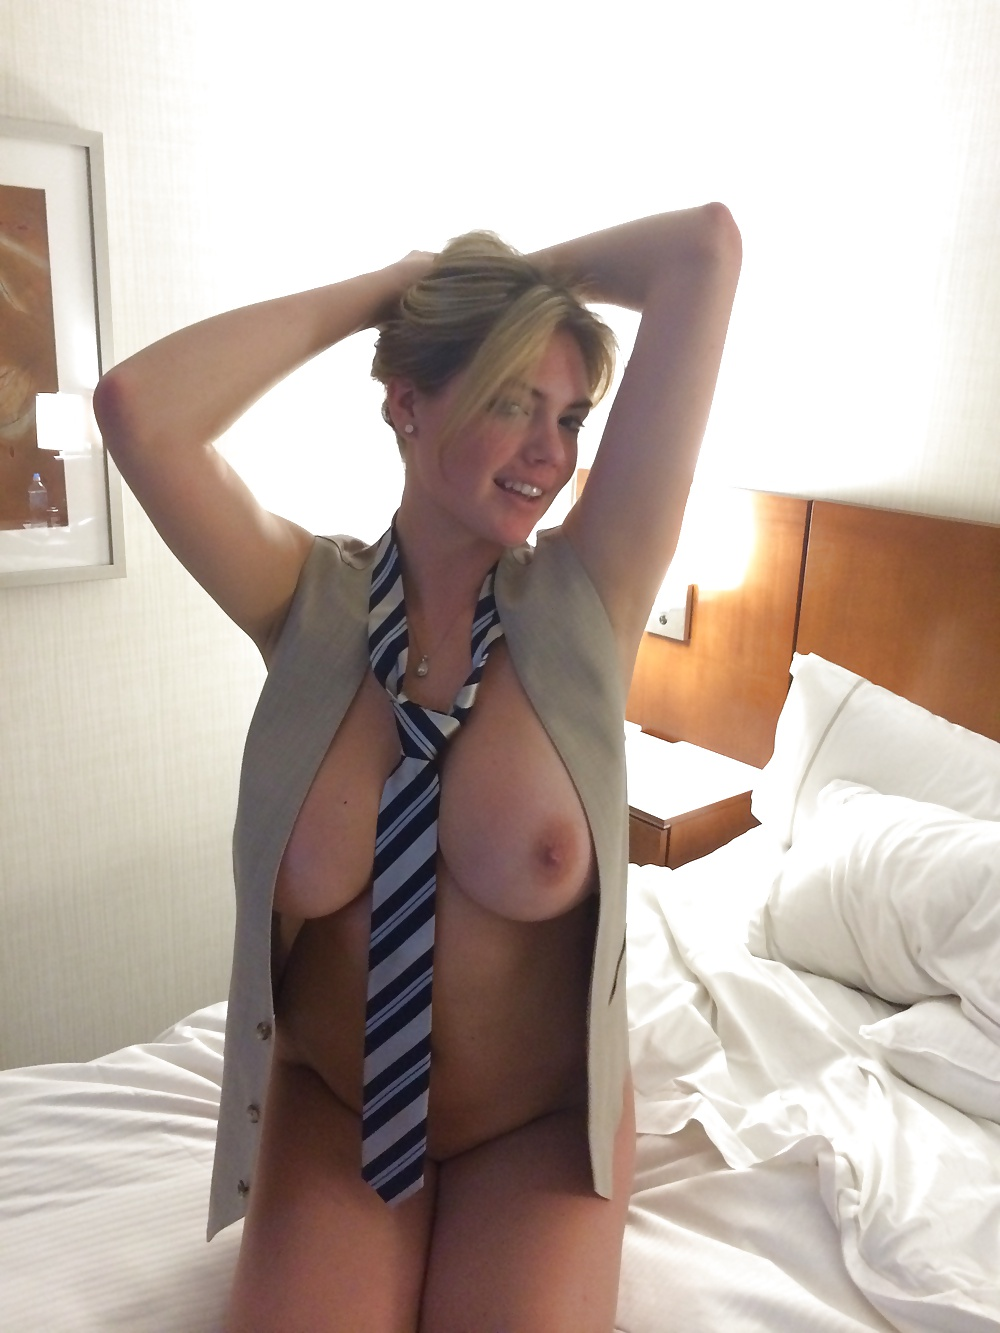 Topless Kate Upton Leaked Nude Video Pics